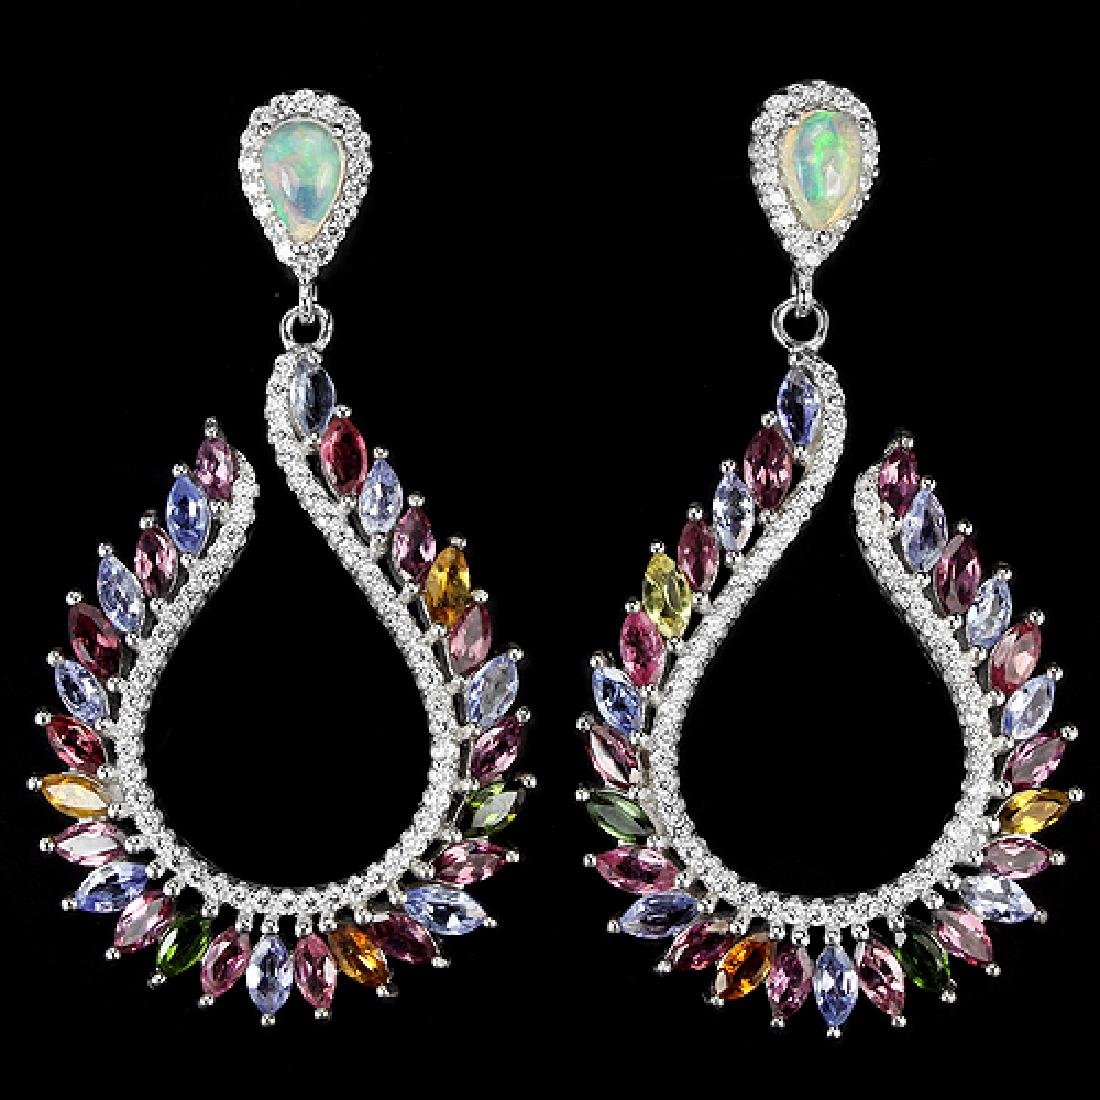 Natural Opal Tanzanite & Tourmaline Earrings